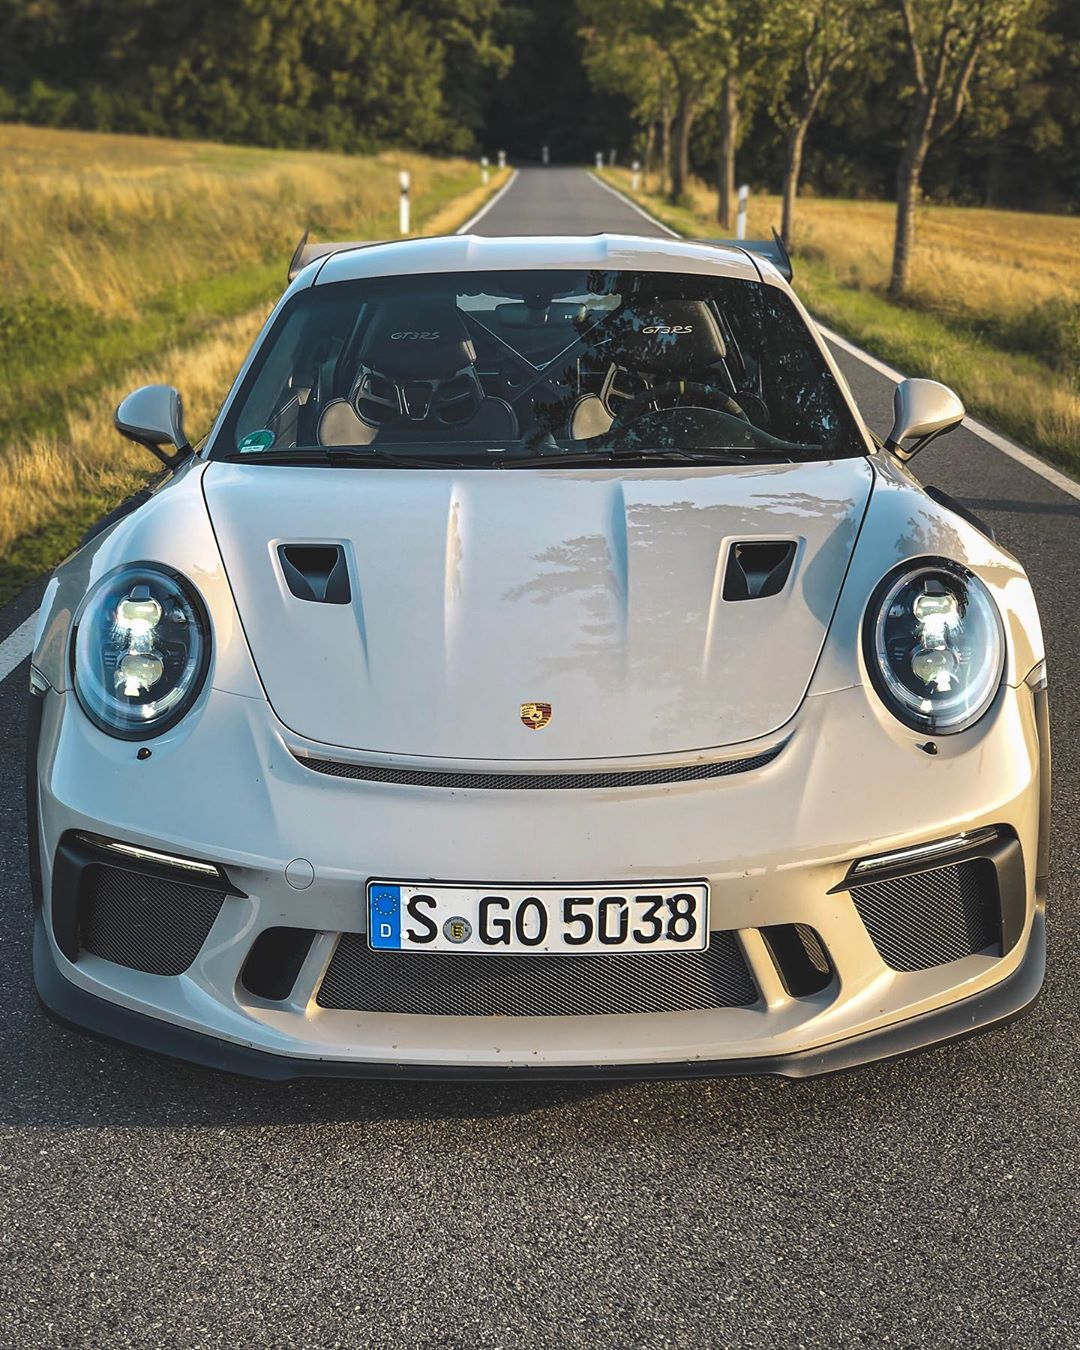 Epic GT3 RS evening drive🔥…which led to the most amazing pure SOUND video we have ever created💥😱…Link in Bio☝️ @porsche_newsroom #porsche #porschegt3rs #gt3rs #gt3rs40 #porschegt3 #gt3 #automanntv